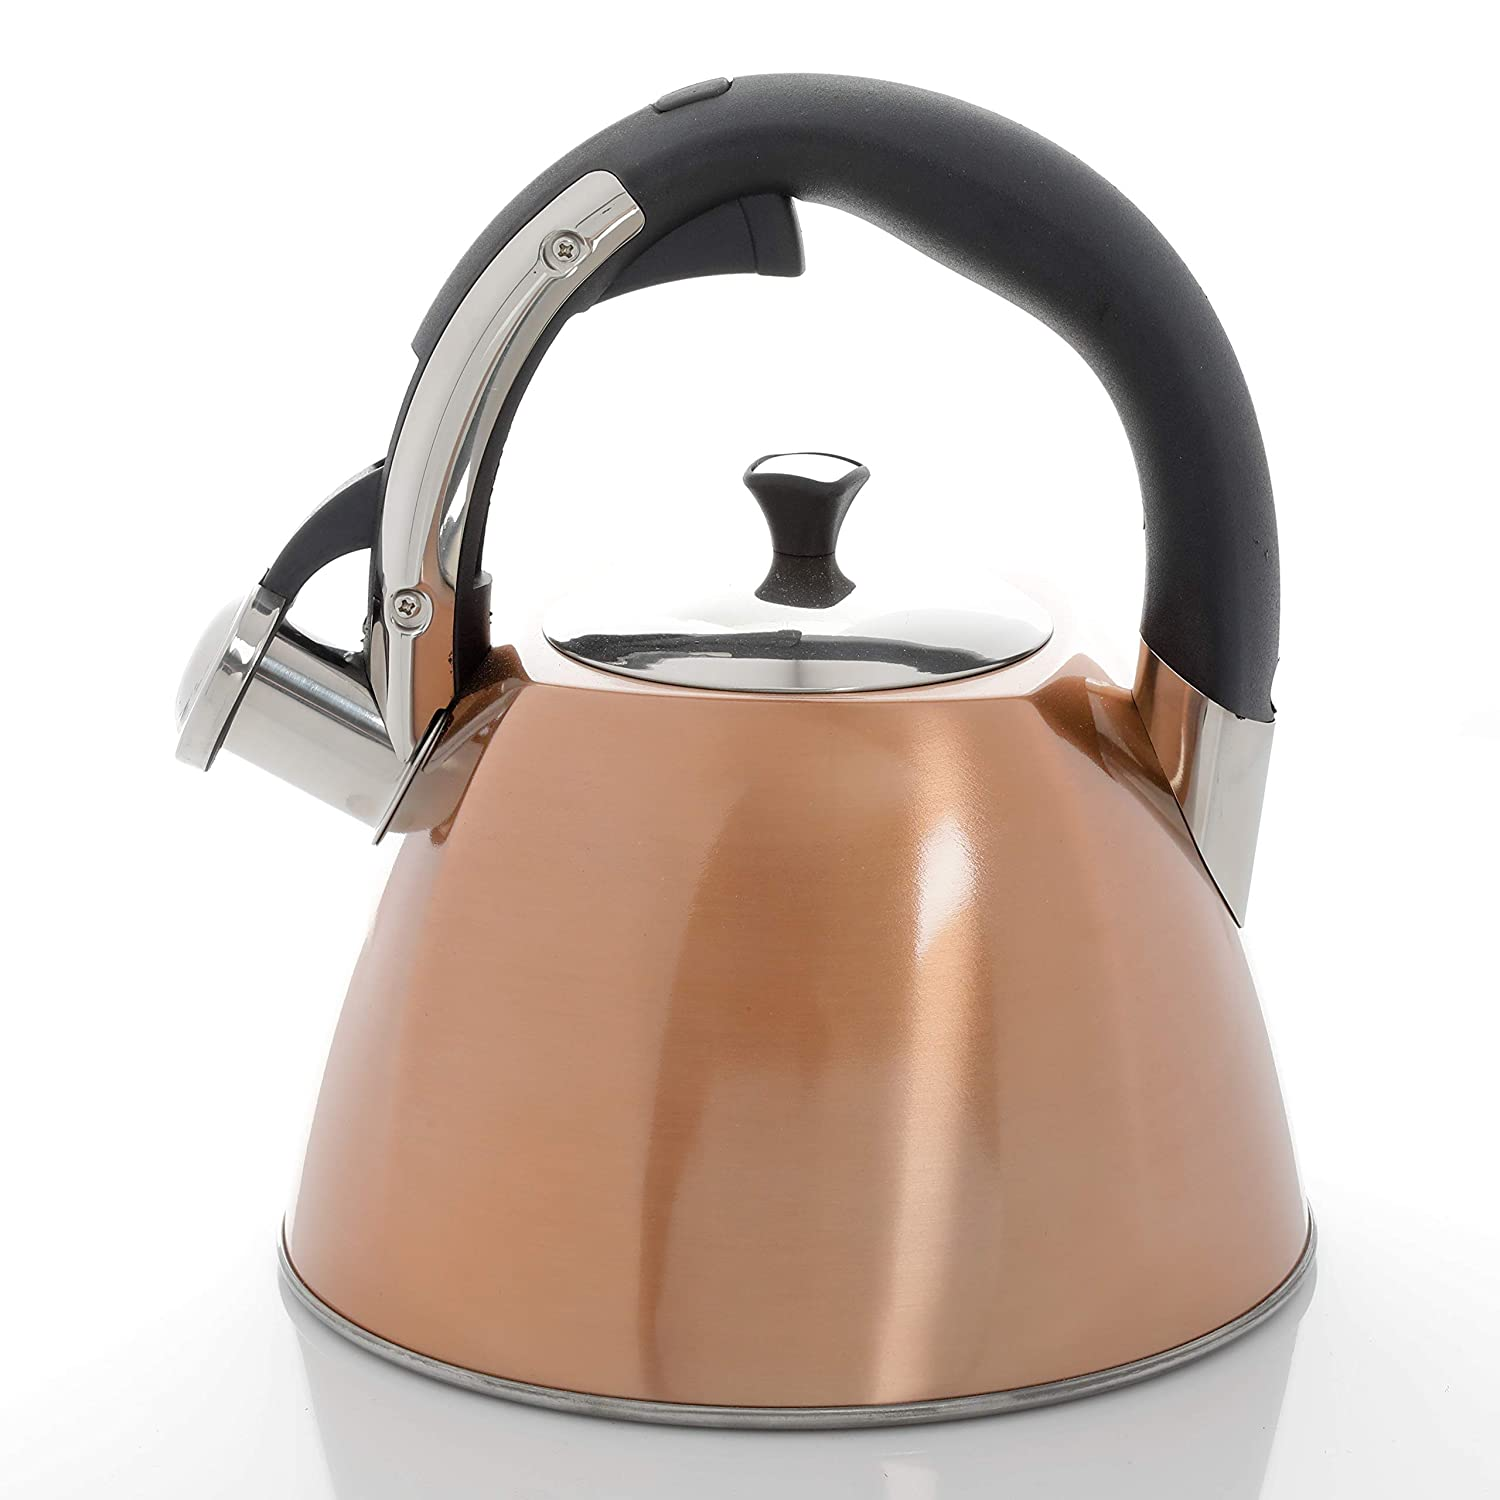 Gibson 111928.01 Mr Coffee Belgrove 2.5 Qt Stainless Steel Whistling Tea Square Kettle, Metallic Copper